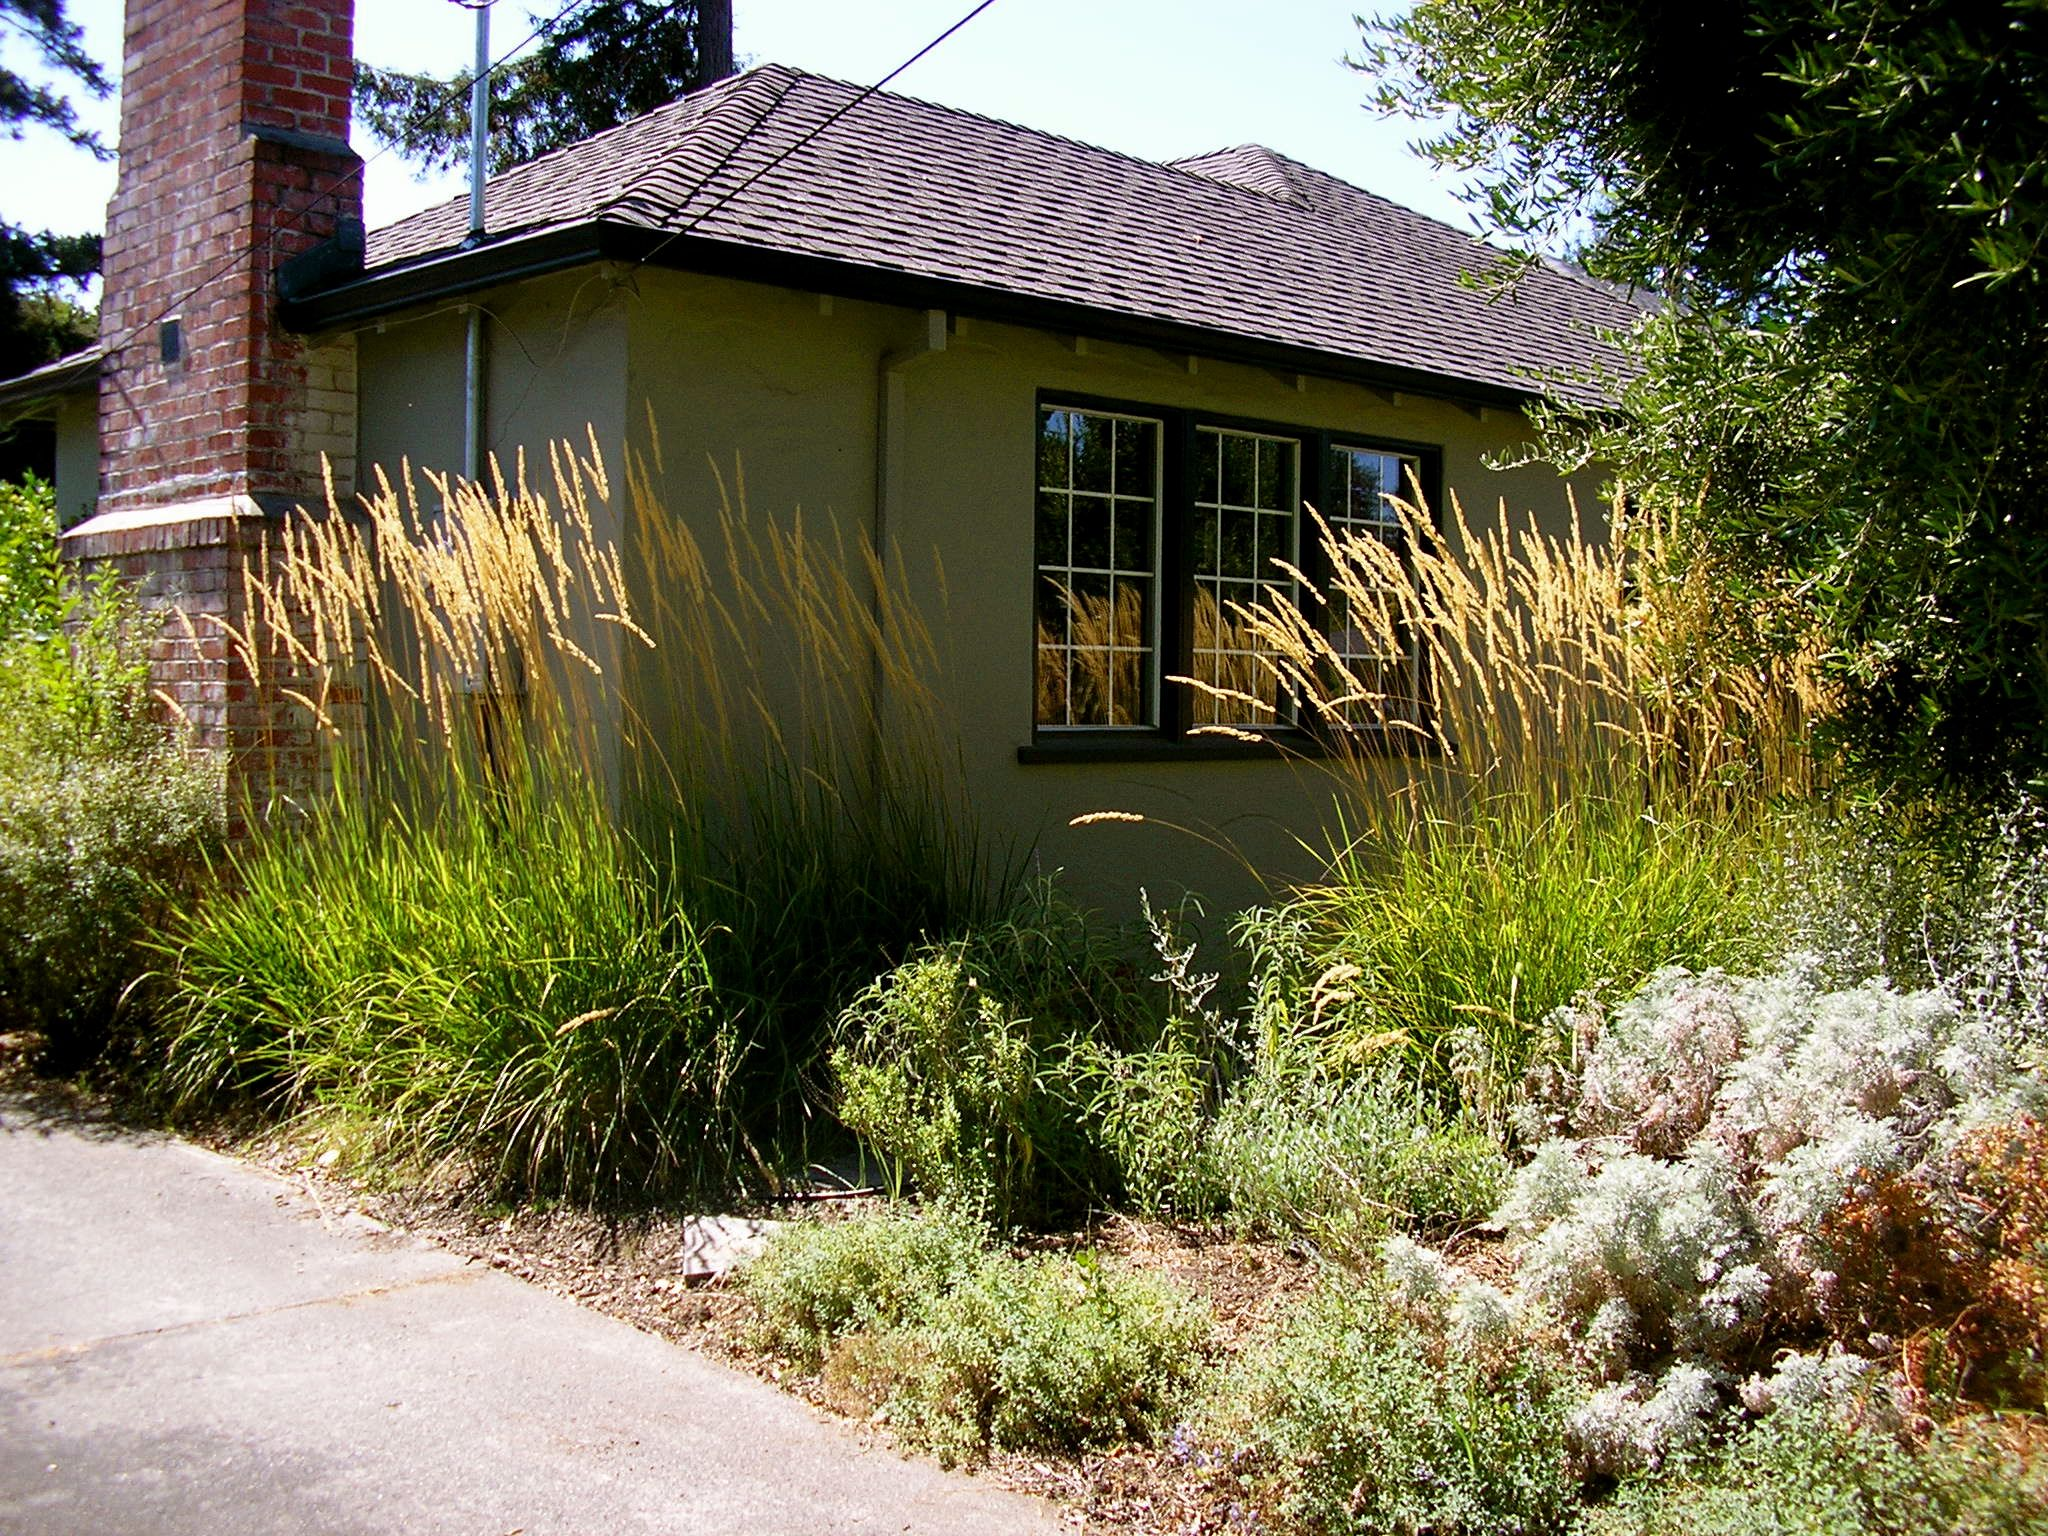 Calamagrostis Karl Foerster provide the sort of structure in a landscape usually occupied by boxwoods. Artemesia, catmint, and an olive tree in the foreground.